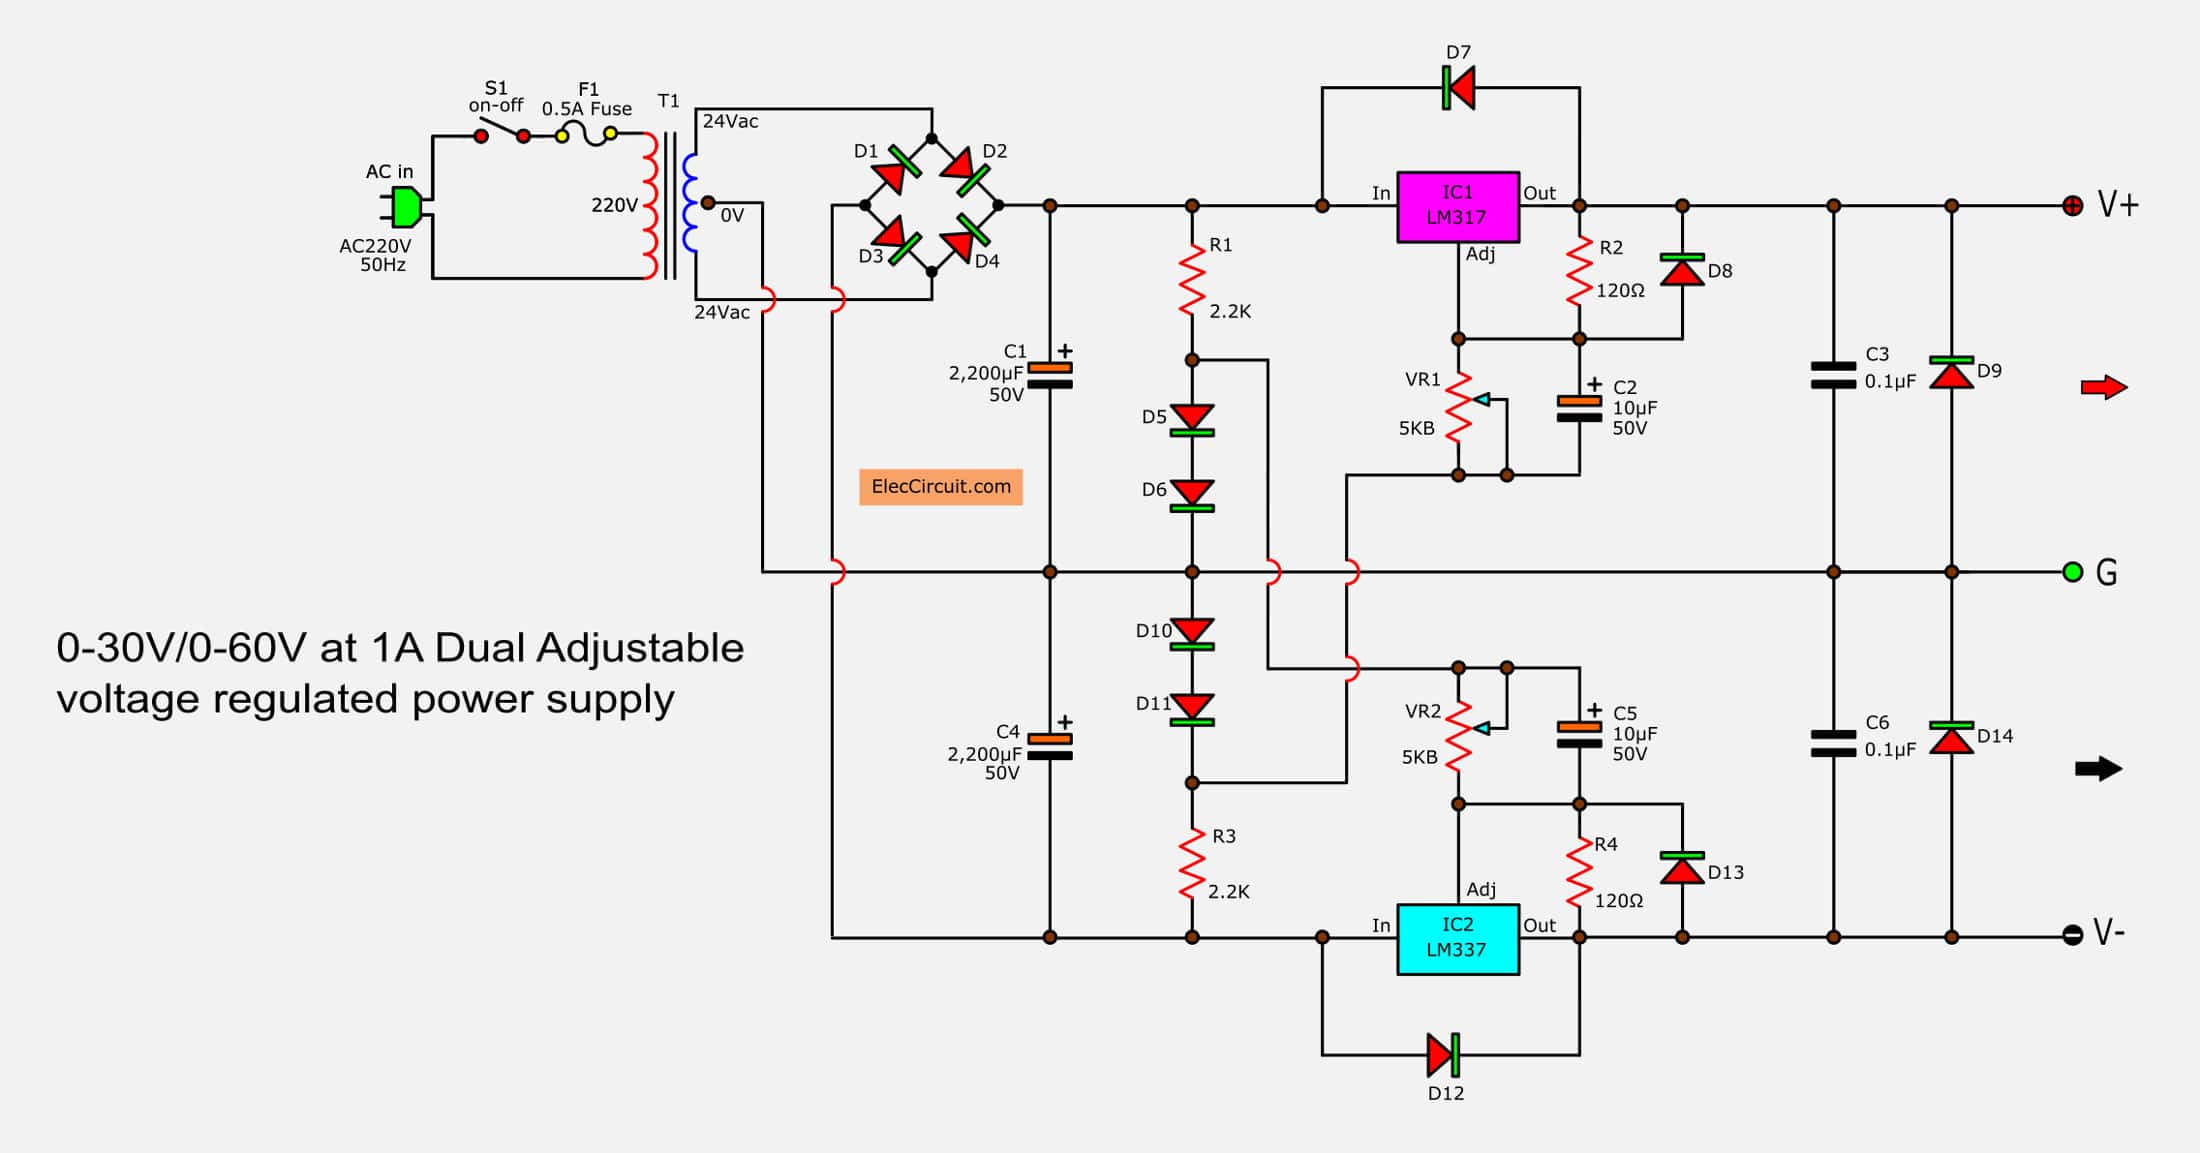 0 60v dual variable power supply circuit by lm317 lm3370 60v dual variable power supply circuit using lm317\u0026lm337